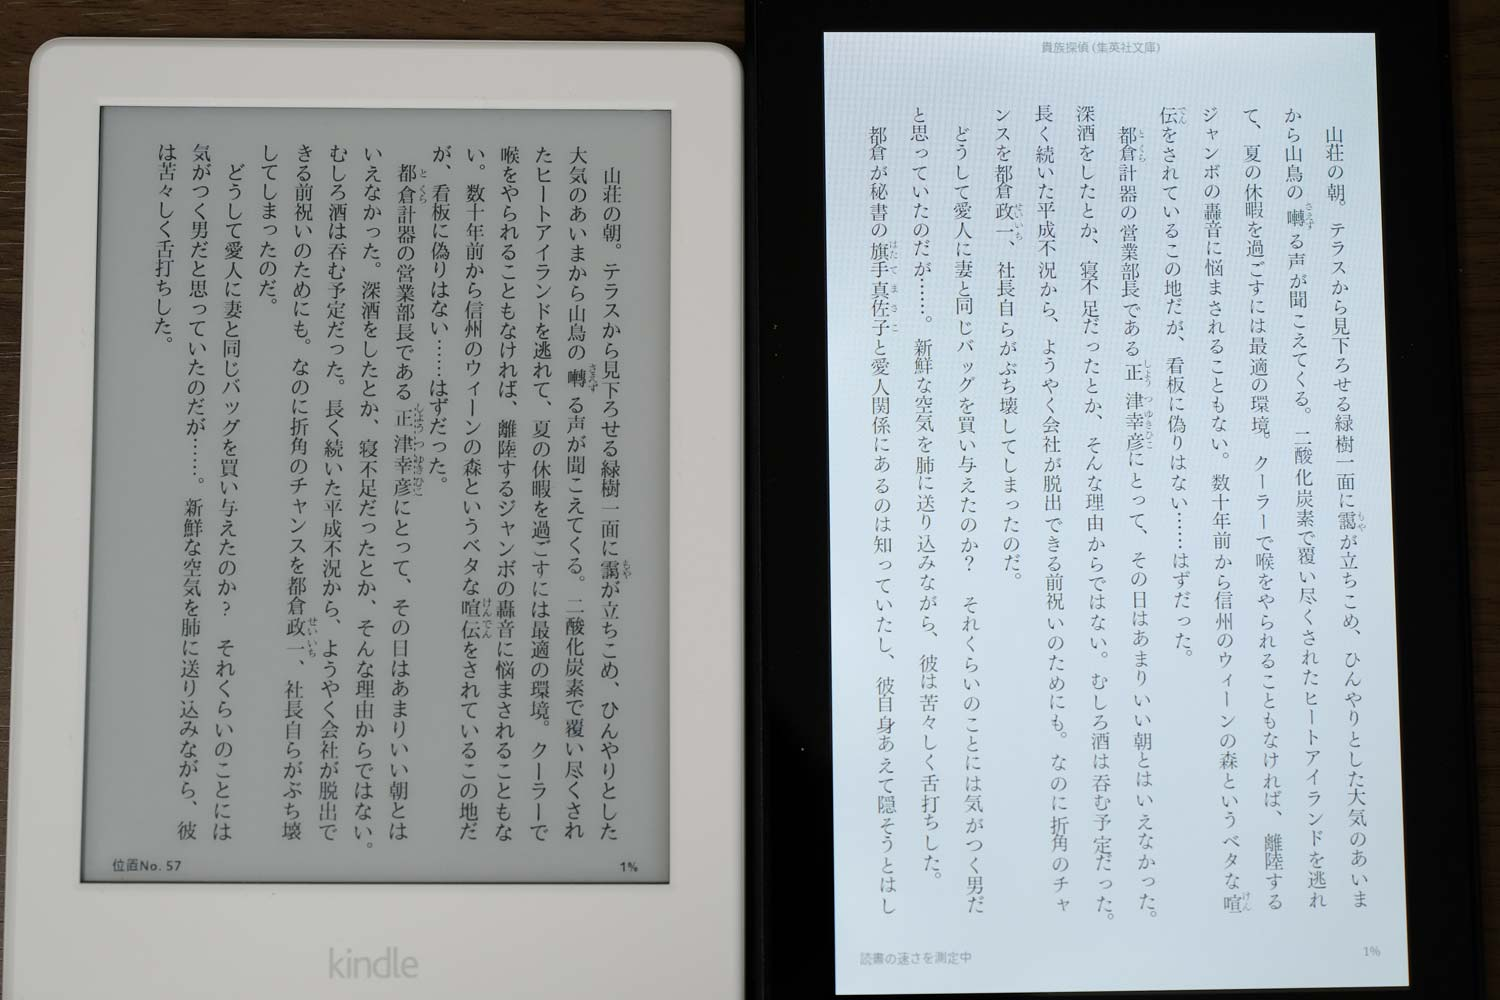 Kindle vs Fire HD 8